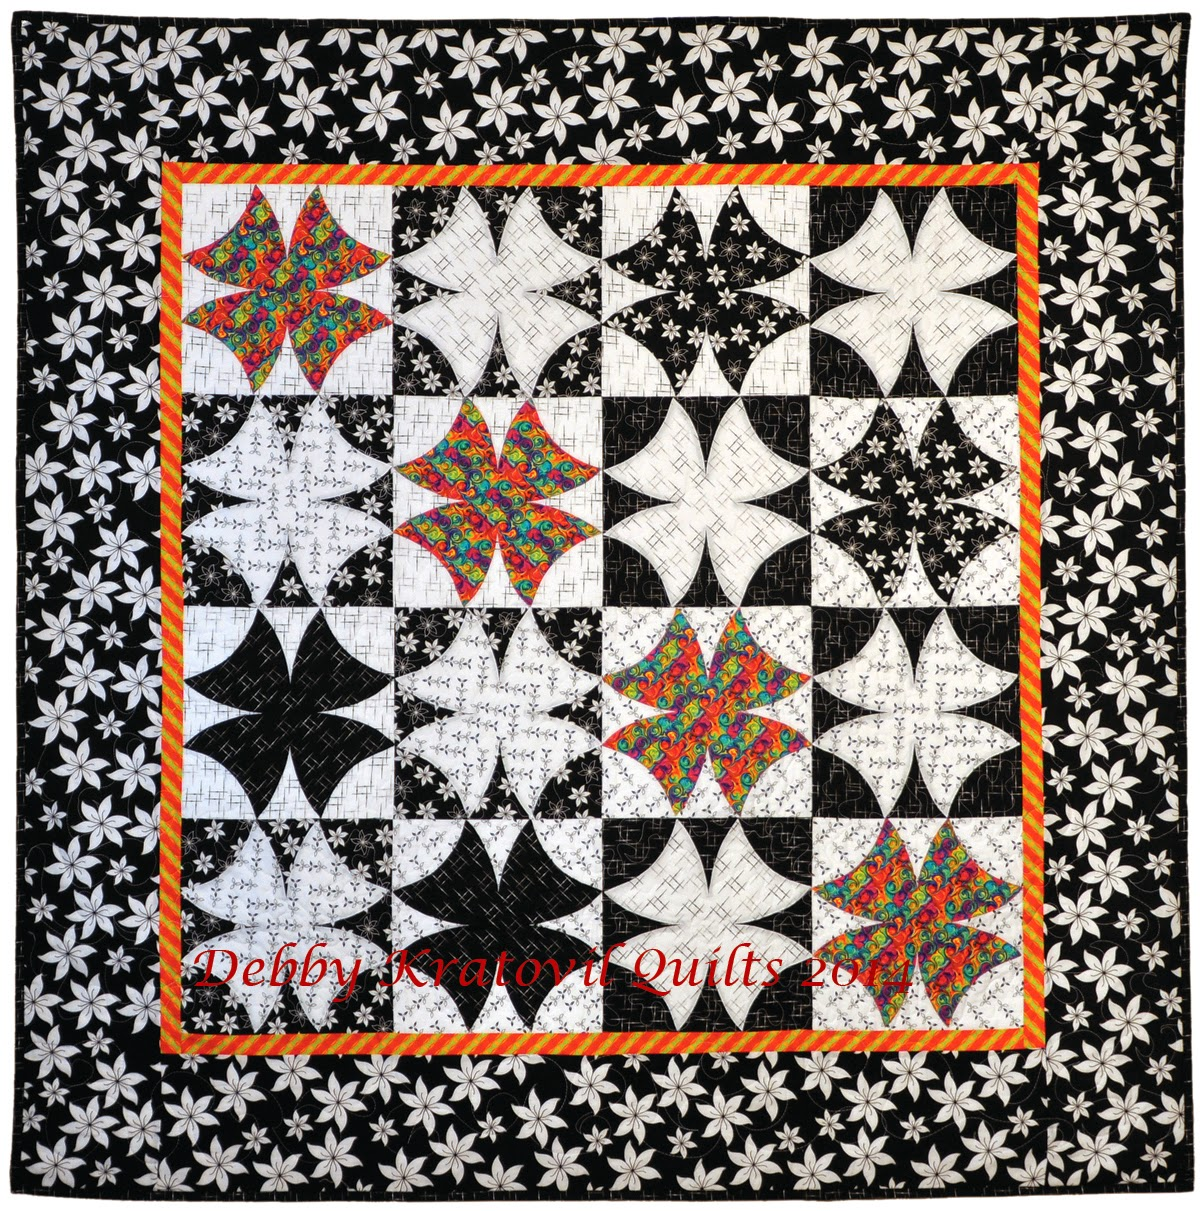 Debby Kratovil Quilts: Winding Ways Quilts